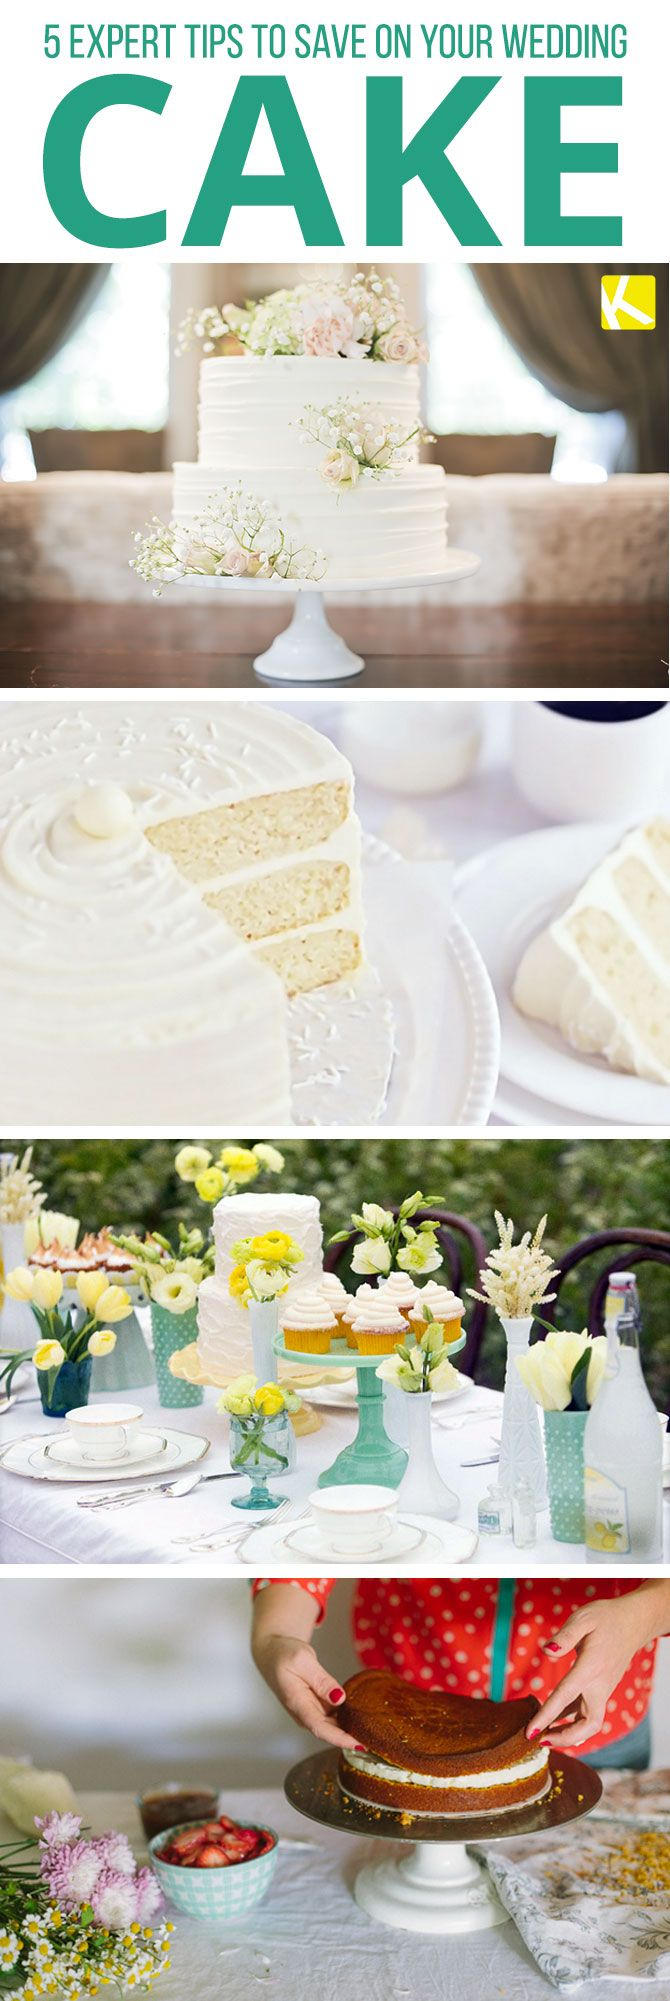 5 Expert Tips to Save on Your Wedding Cake